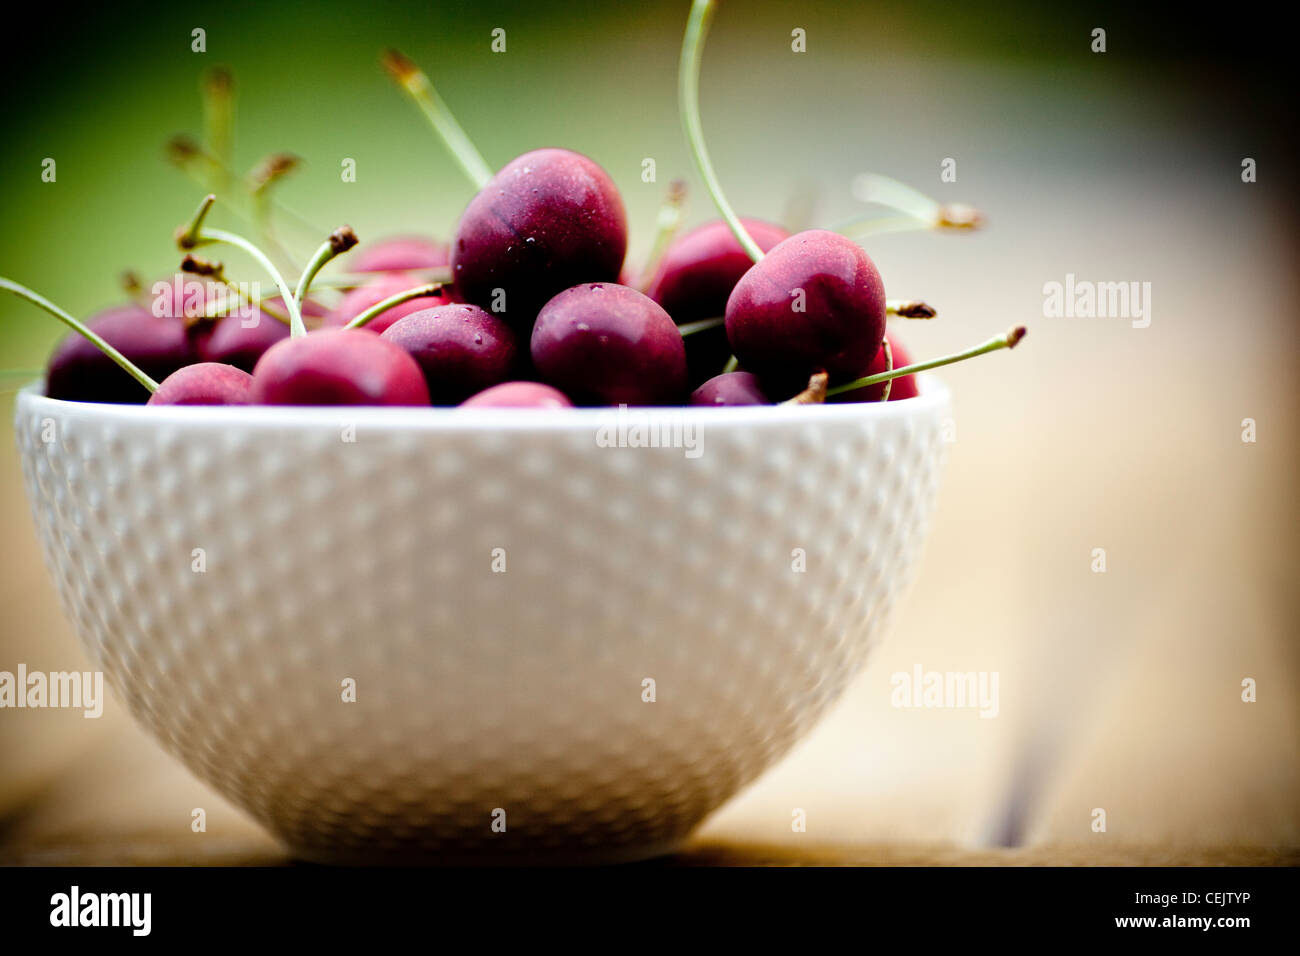 Cherries in a bowl - Stock Image